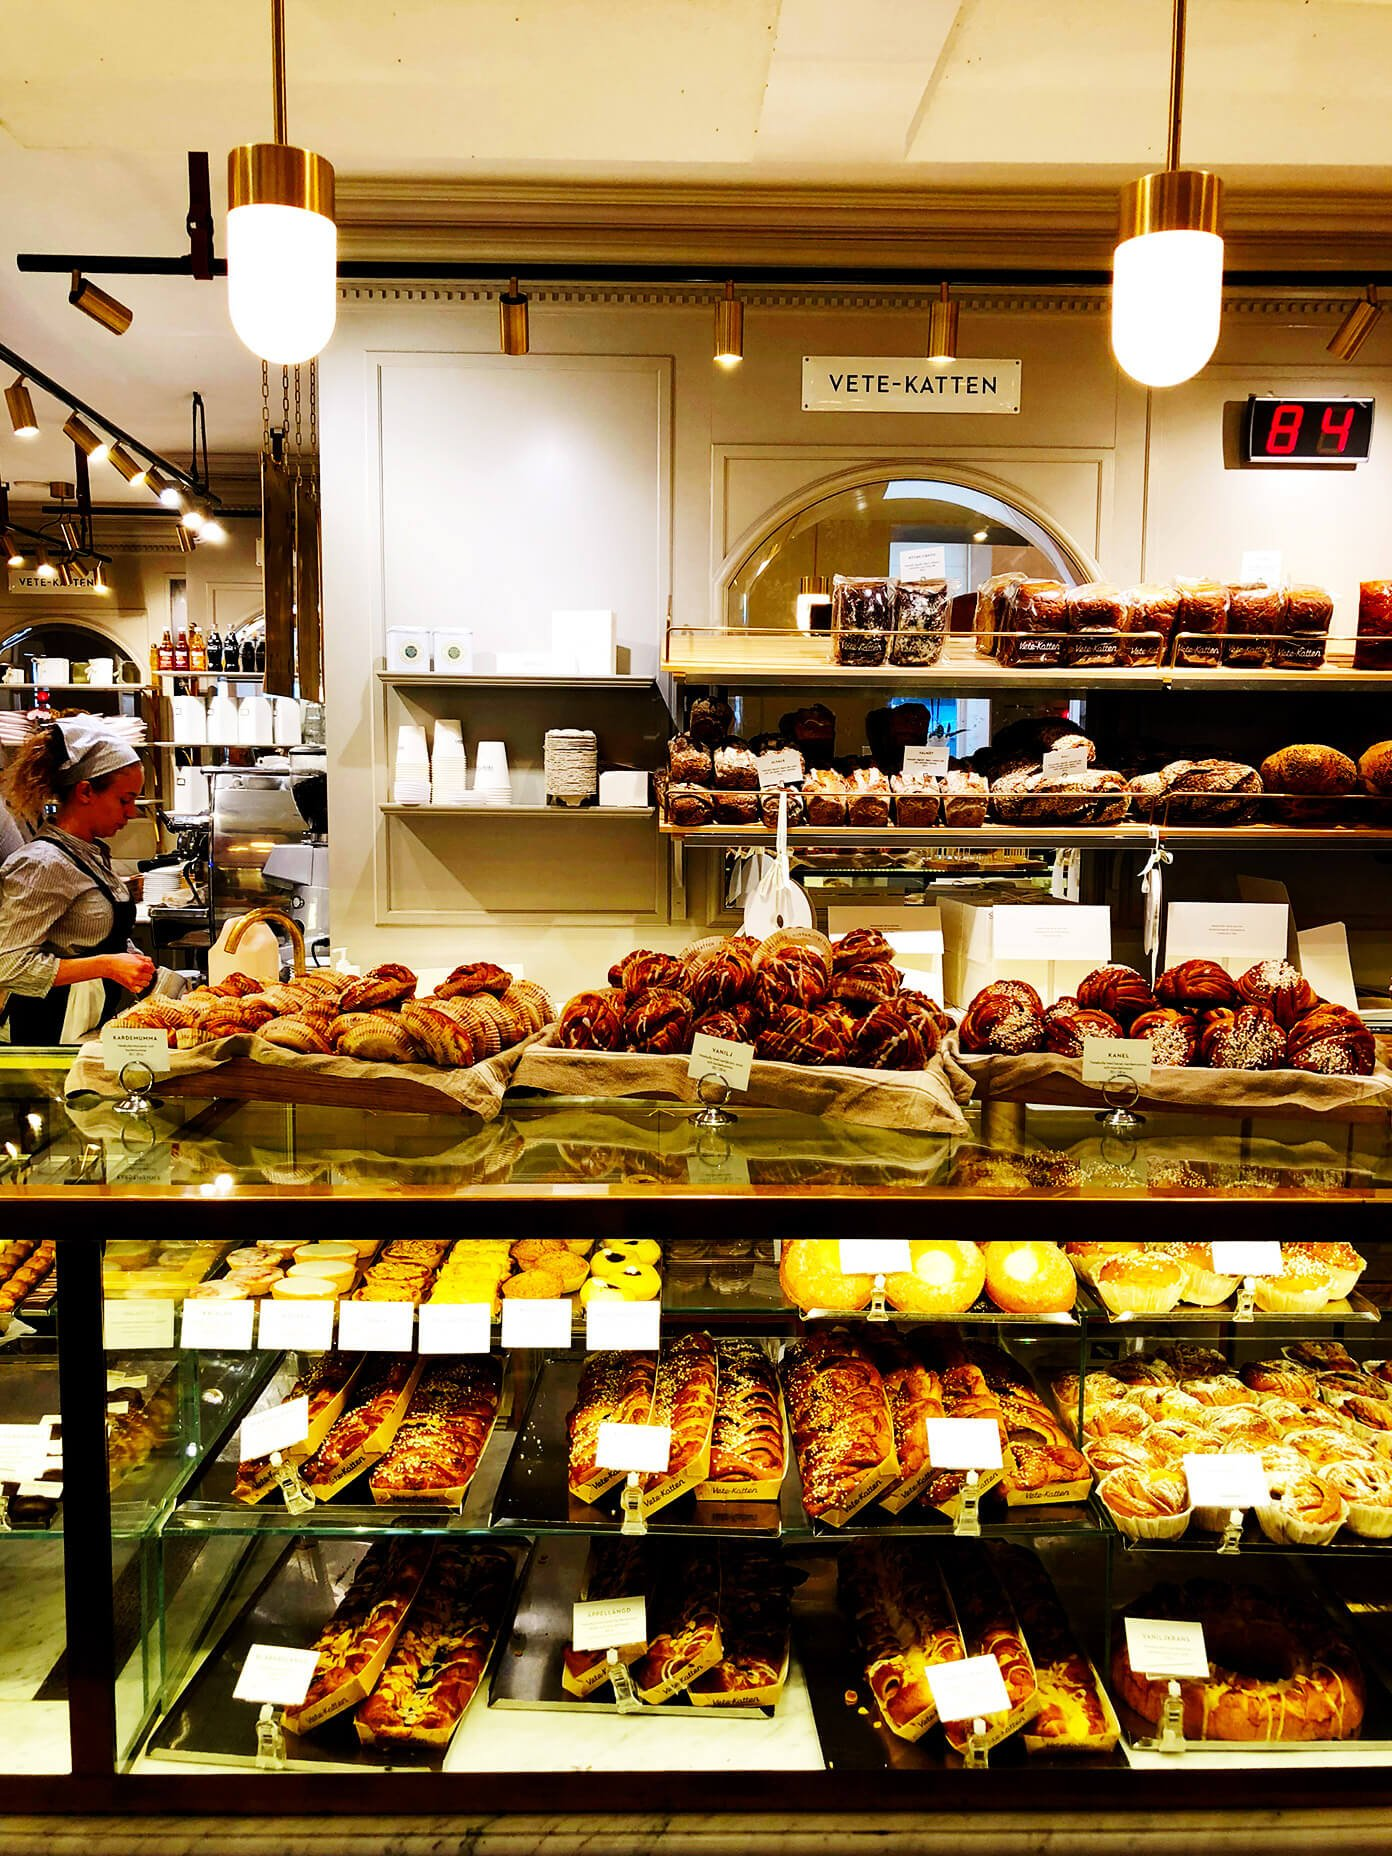 Exquisite baked goods from Vete-Katten in Stockhom, Sweden